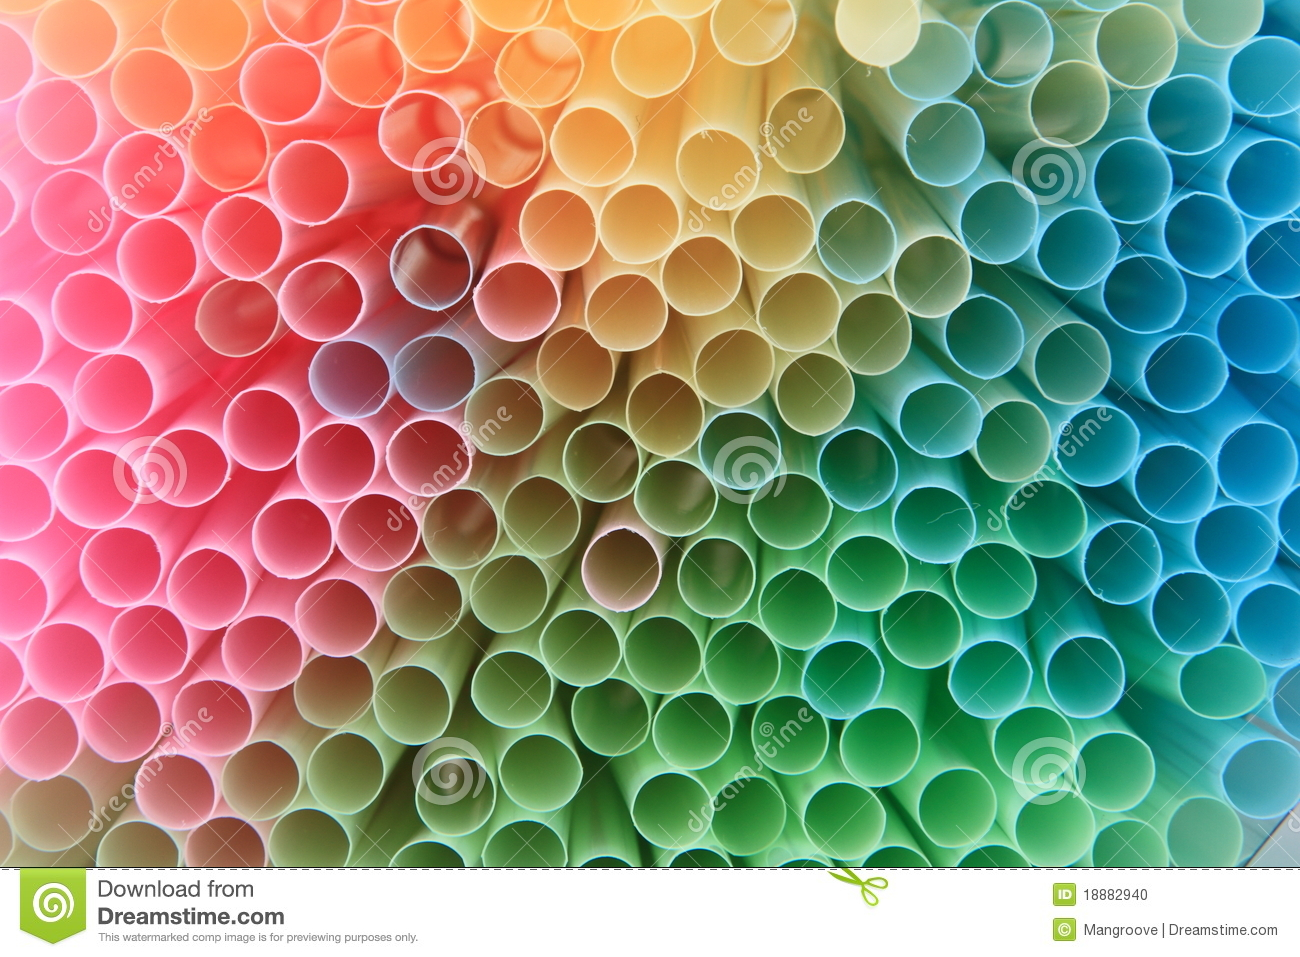 Straws background in rainbow colors